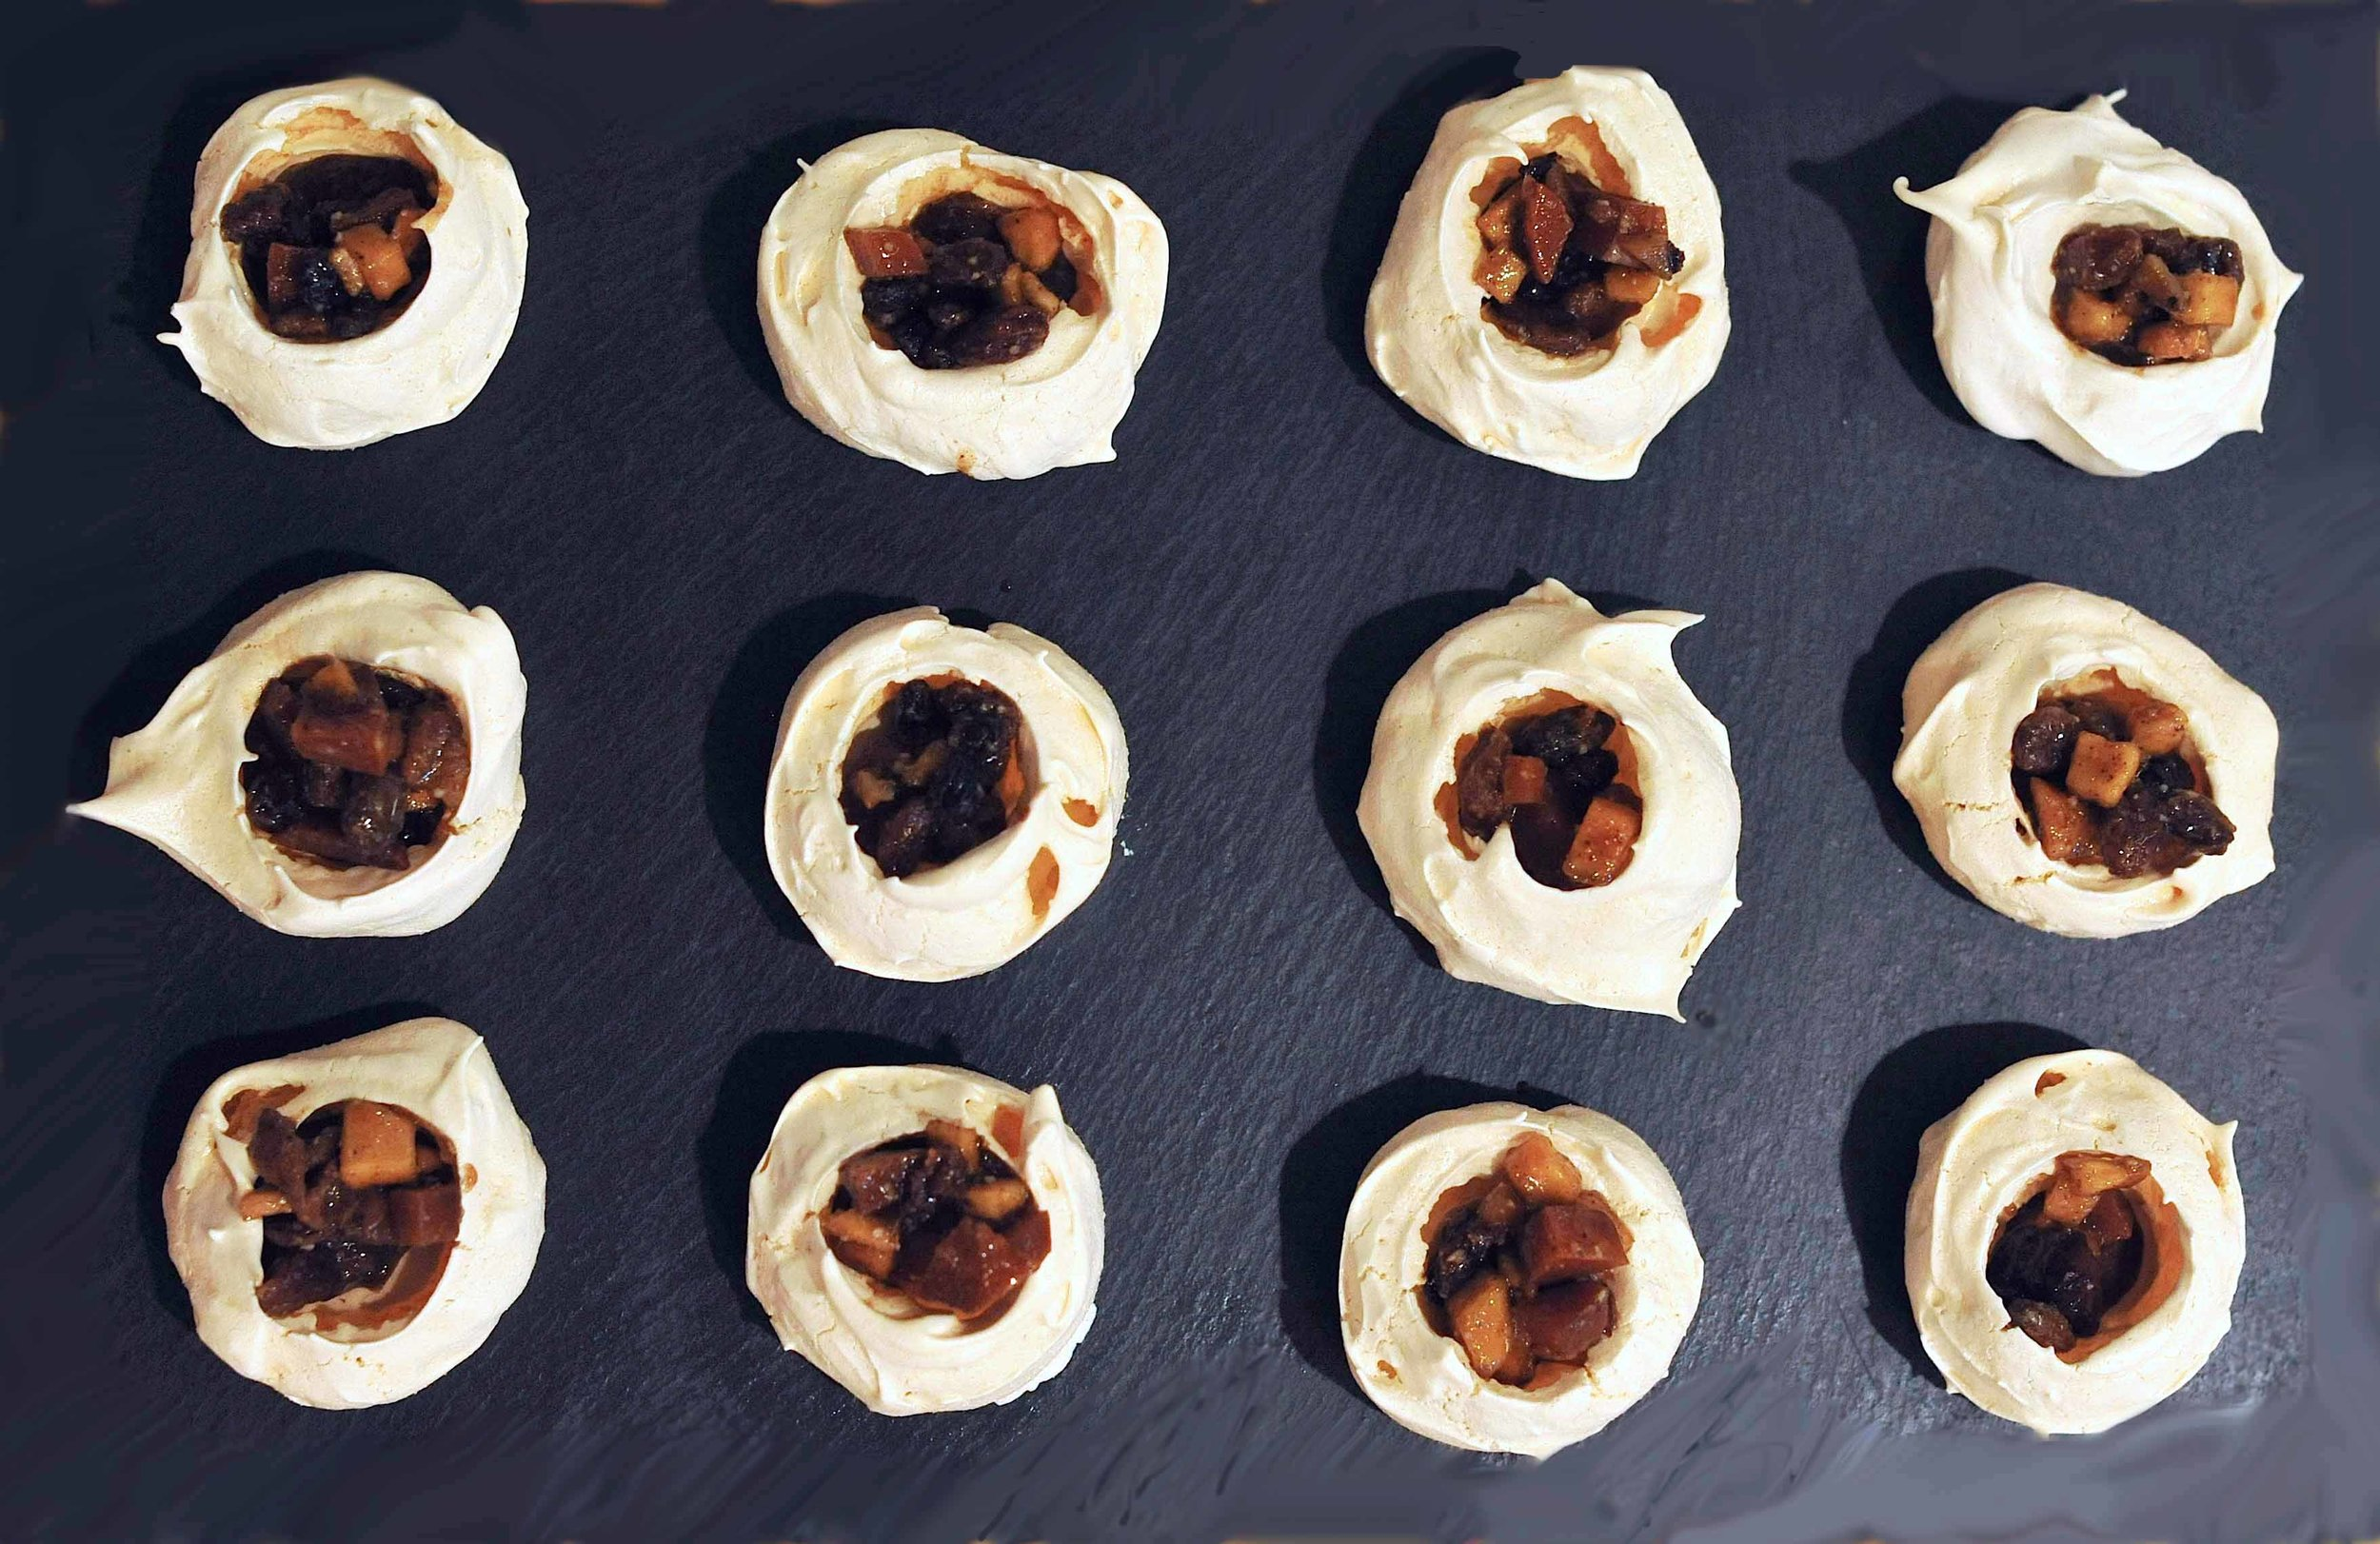 Smy Goodness Bite-size Mincemeat Meringue Nests from Smy Goodness Catering